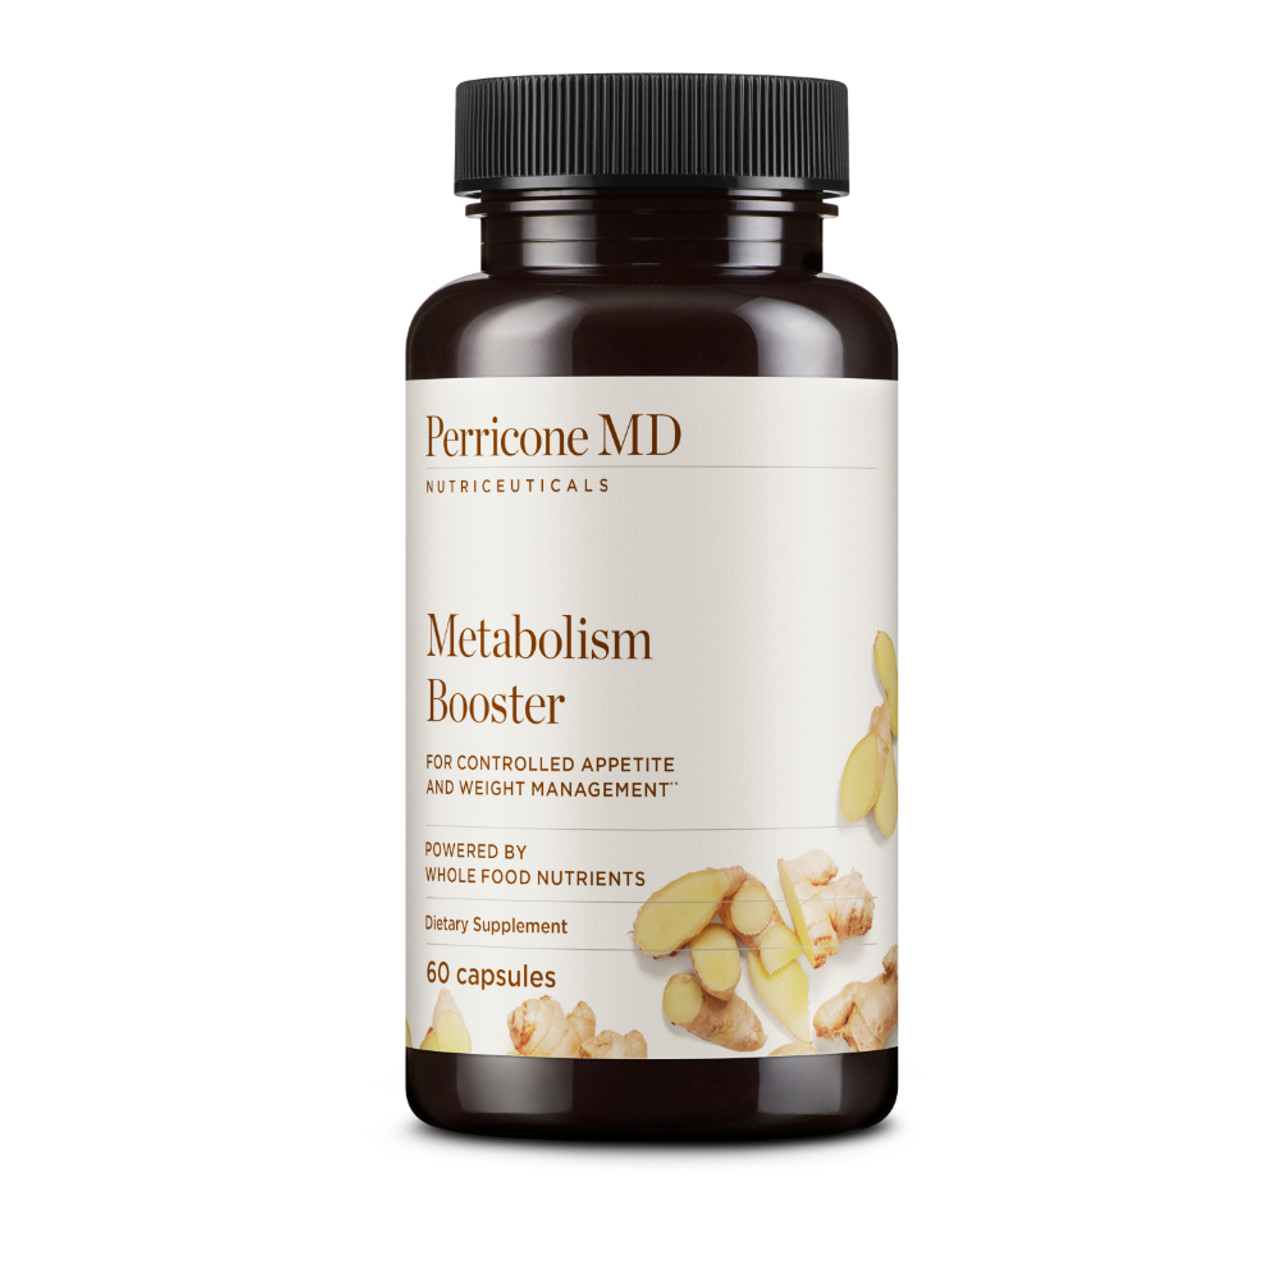 Perricone MD Metabolism Booster (discontinued) BeautifiedYou.com